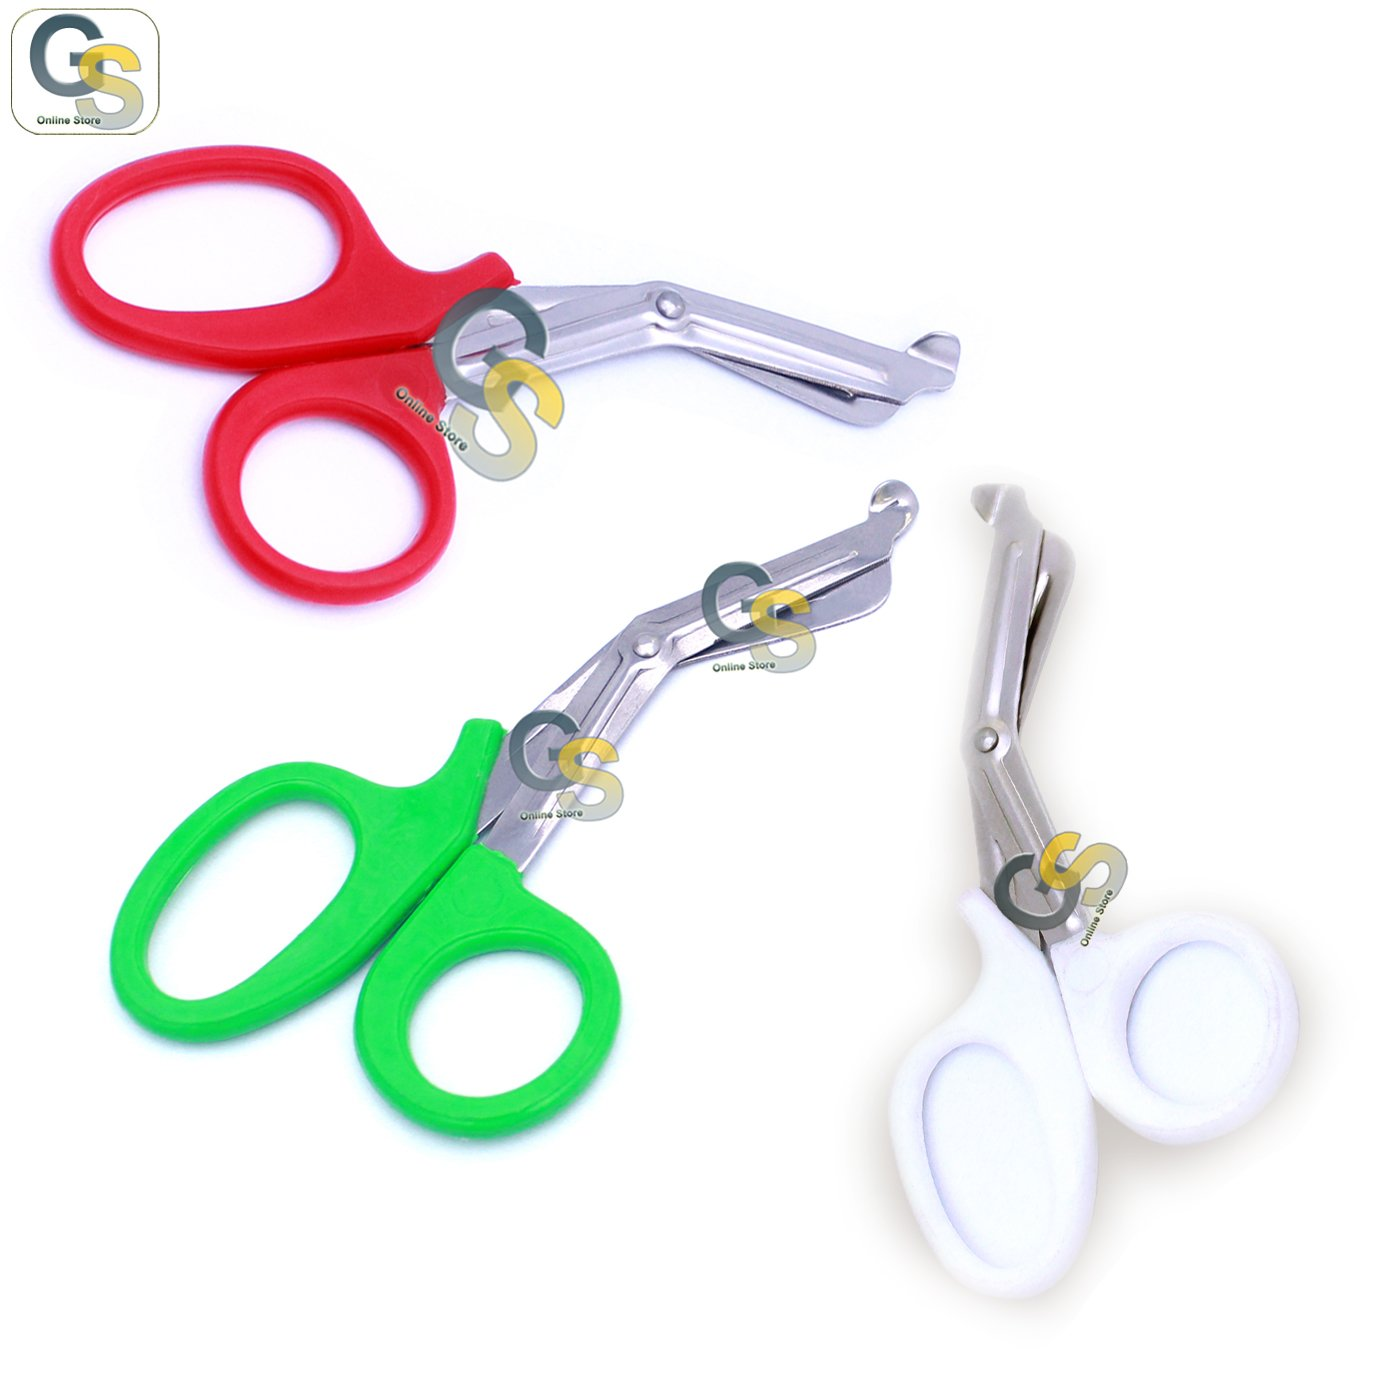 G.S 3 PCS (RED & GREEN & WHITE) PARAMEDIC UTILITY BANDAGE TRAUMA EMT EMS SHEARS SCISSORS 7.25 INCH STAINLESS STEEL